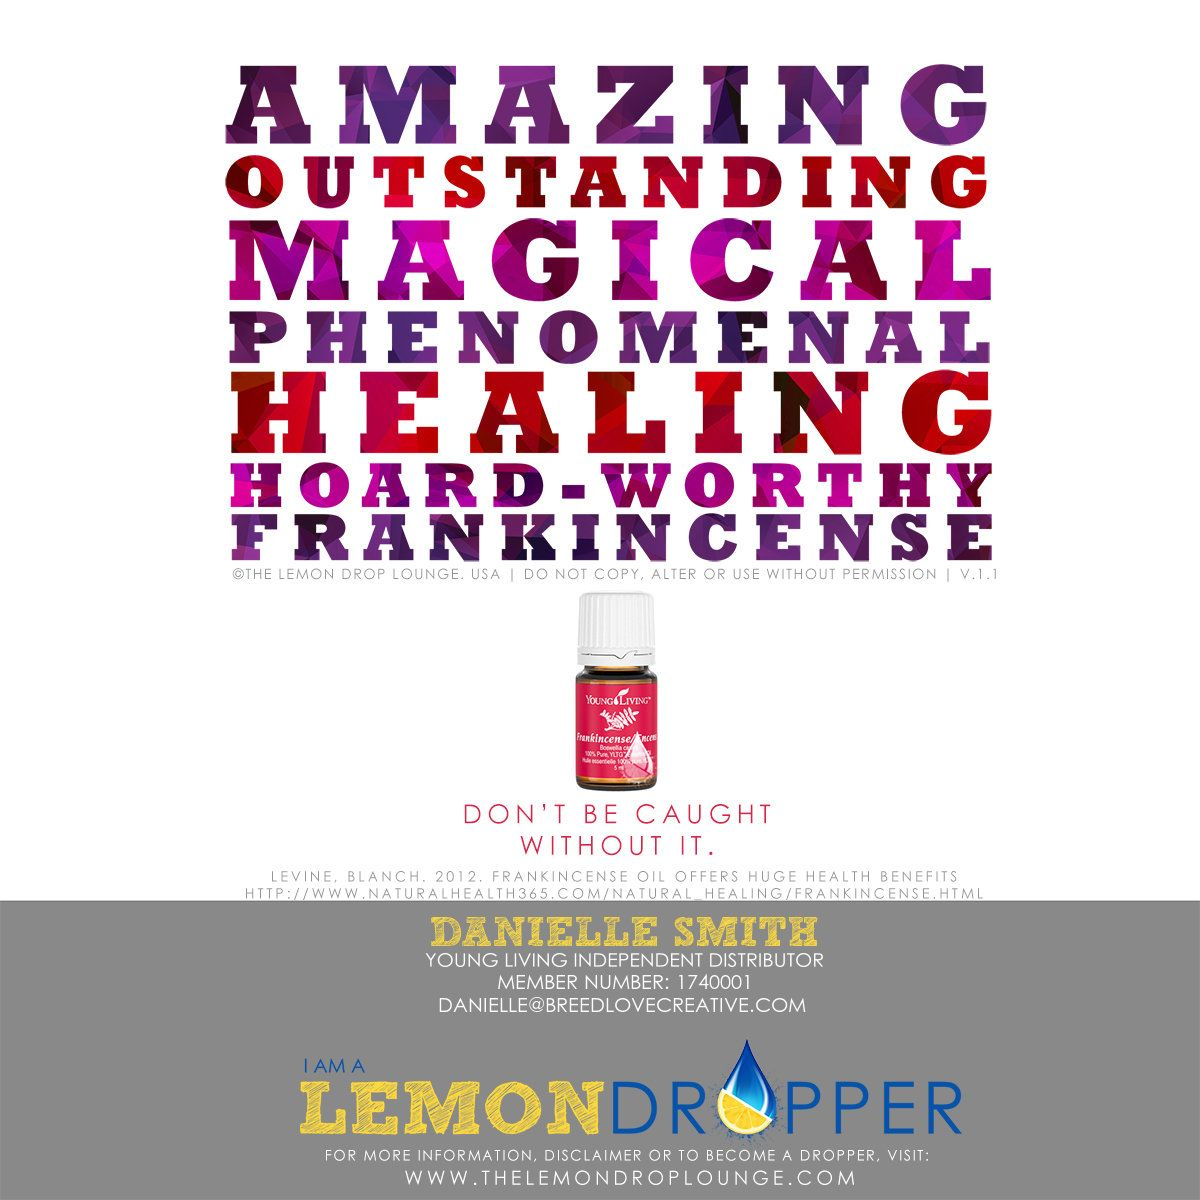 Frankincense - it's magical